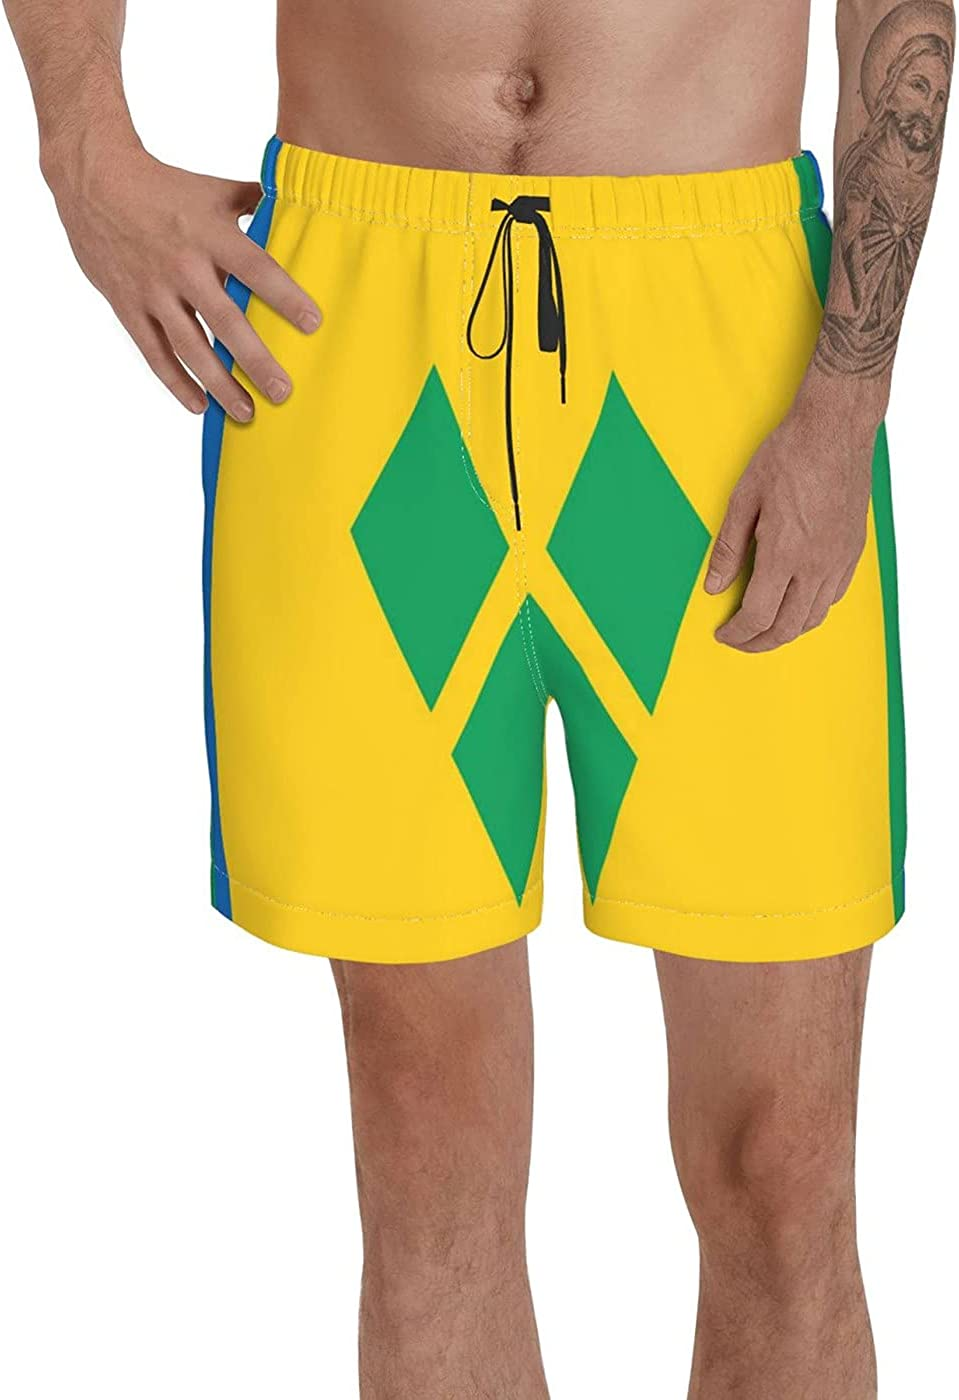 Count Saint Vincent Flag Men's 3D Printed Funny Summer Quick Dry Swim Short Board Shorts with